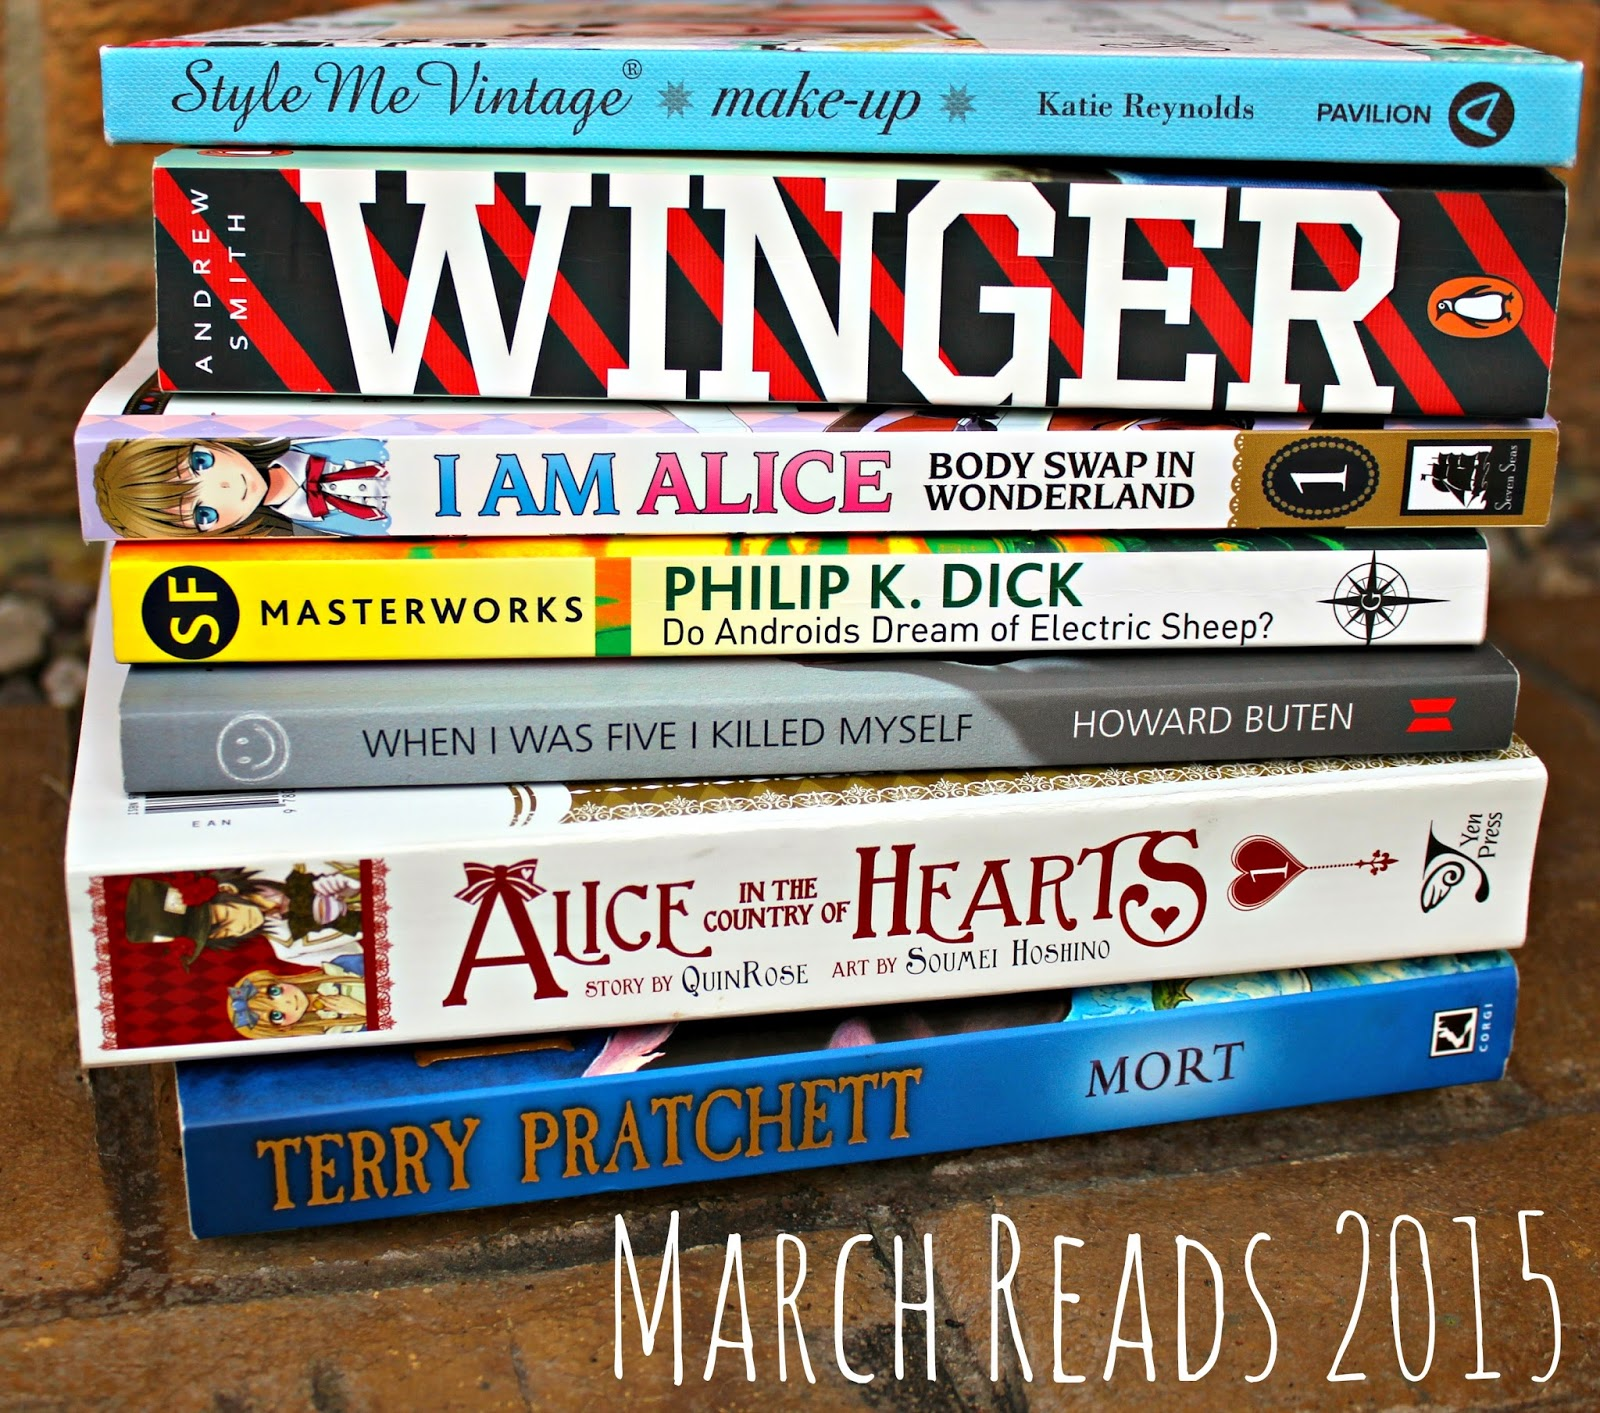 March Reads 2015